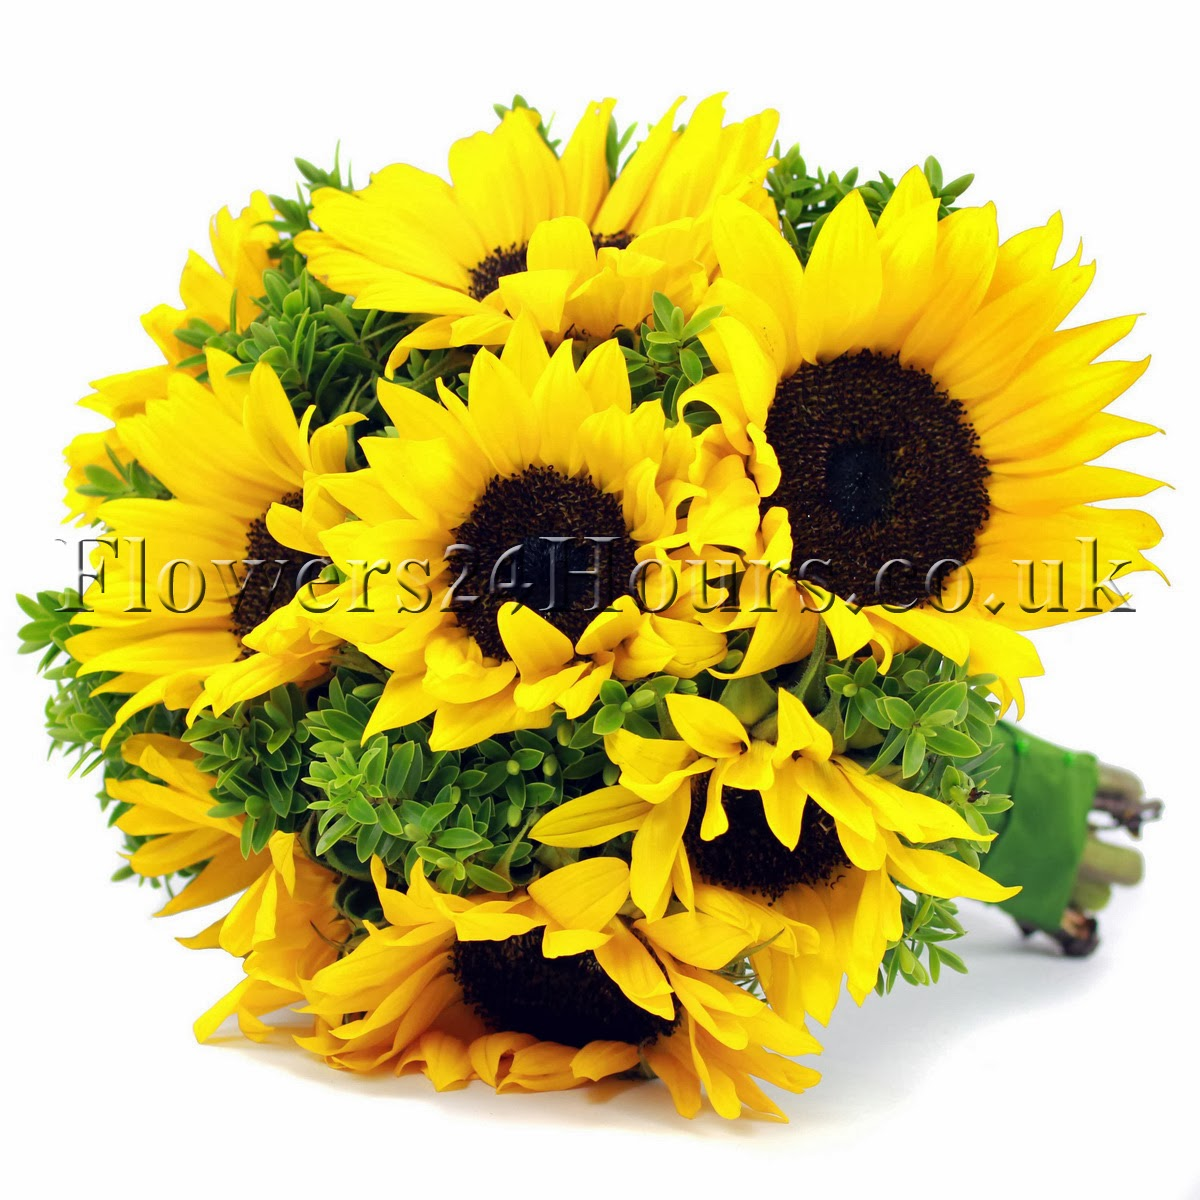 Flowers That Say Summer And Gifts To Match From Flowers24hours